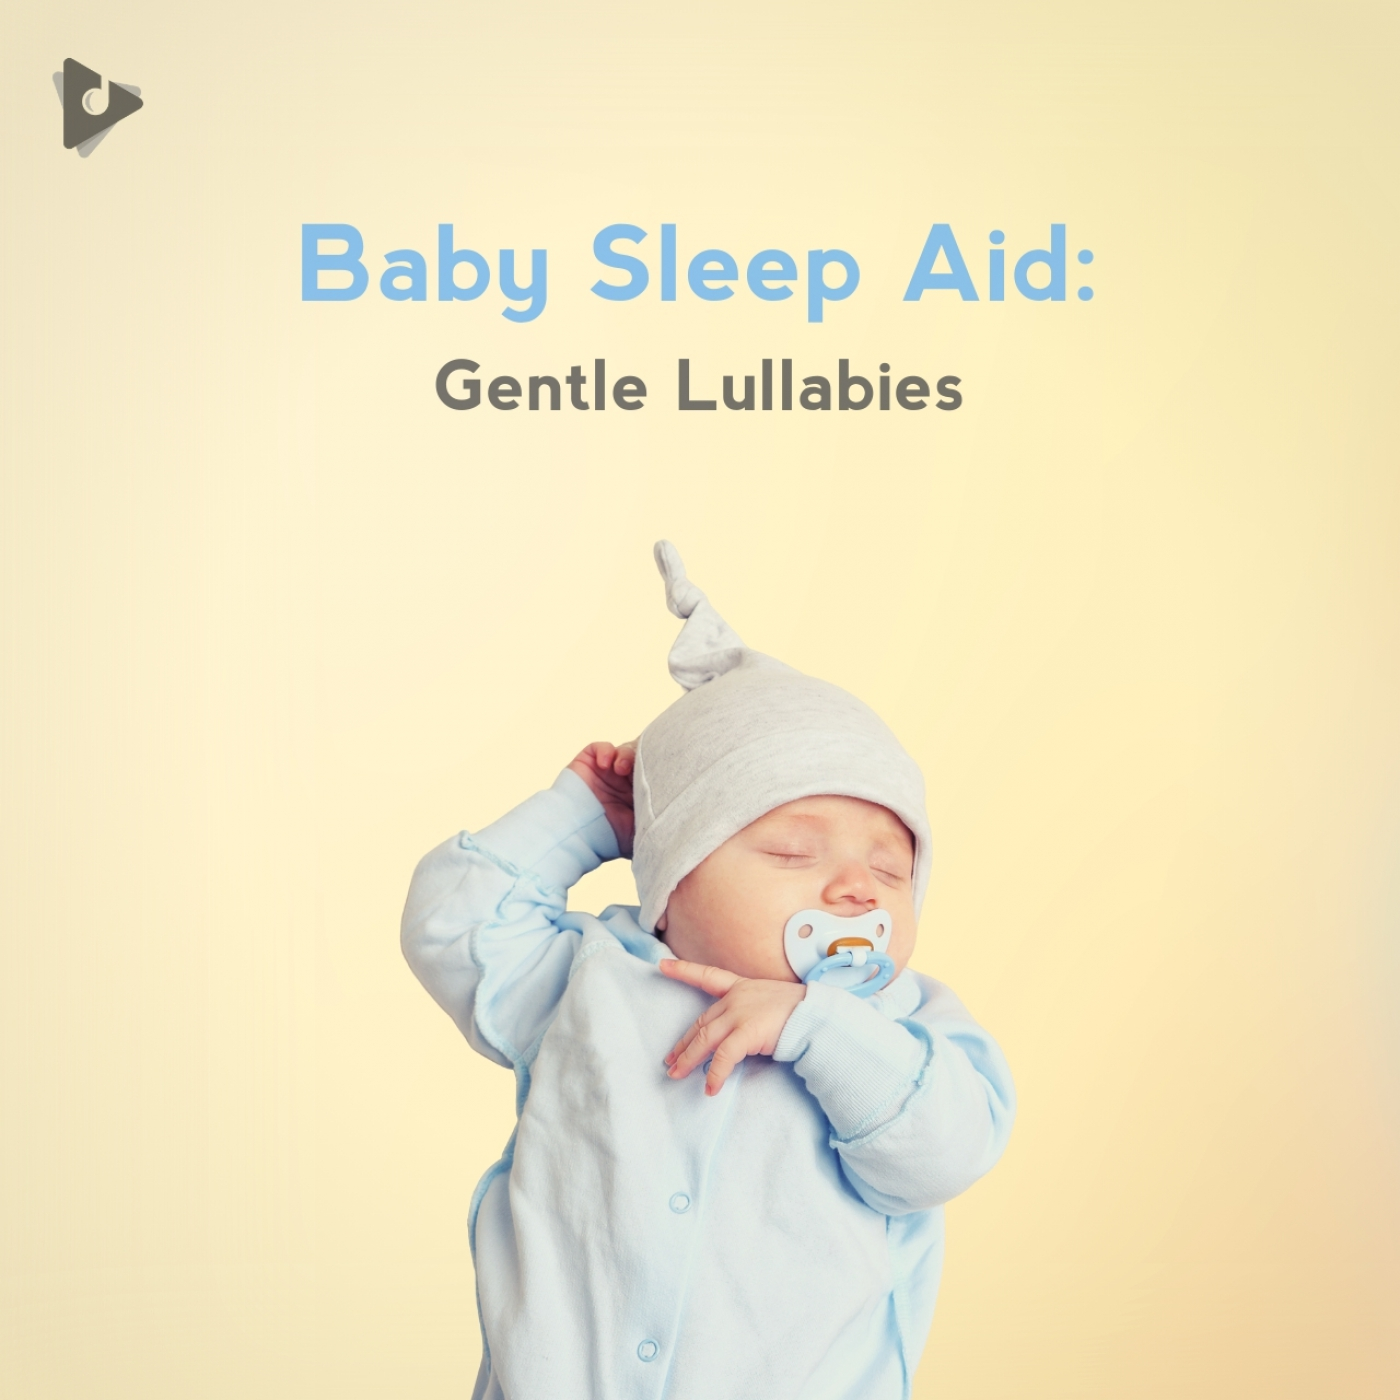 Baby Sleep Aid: Gentle Lullabies